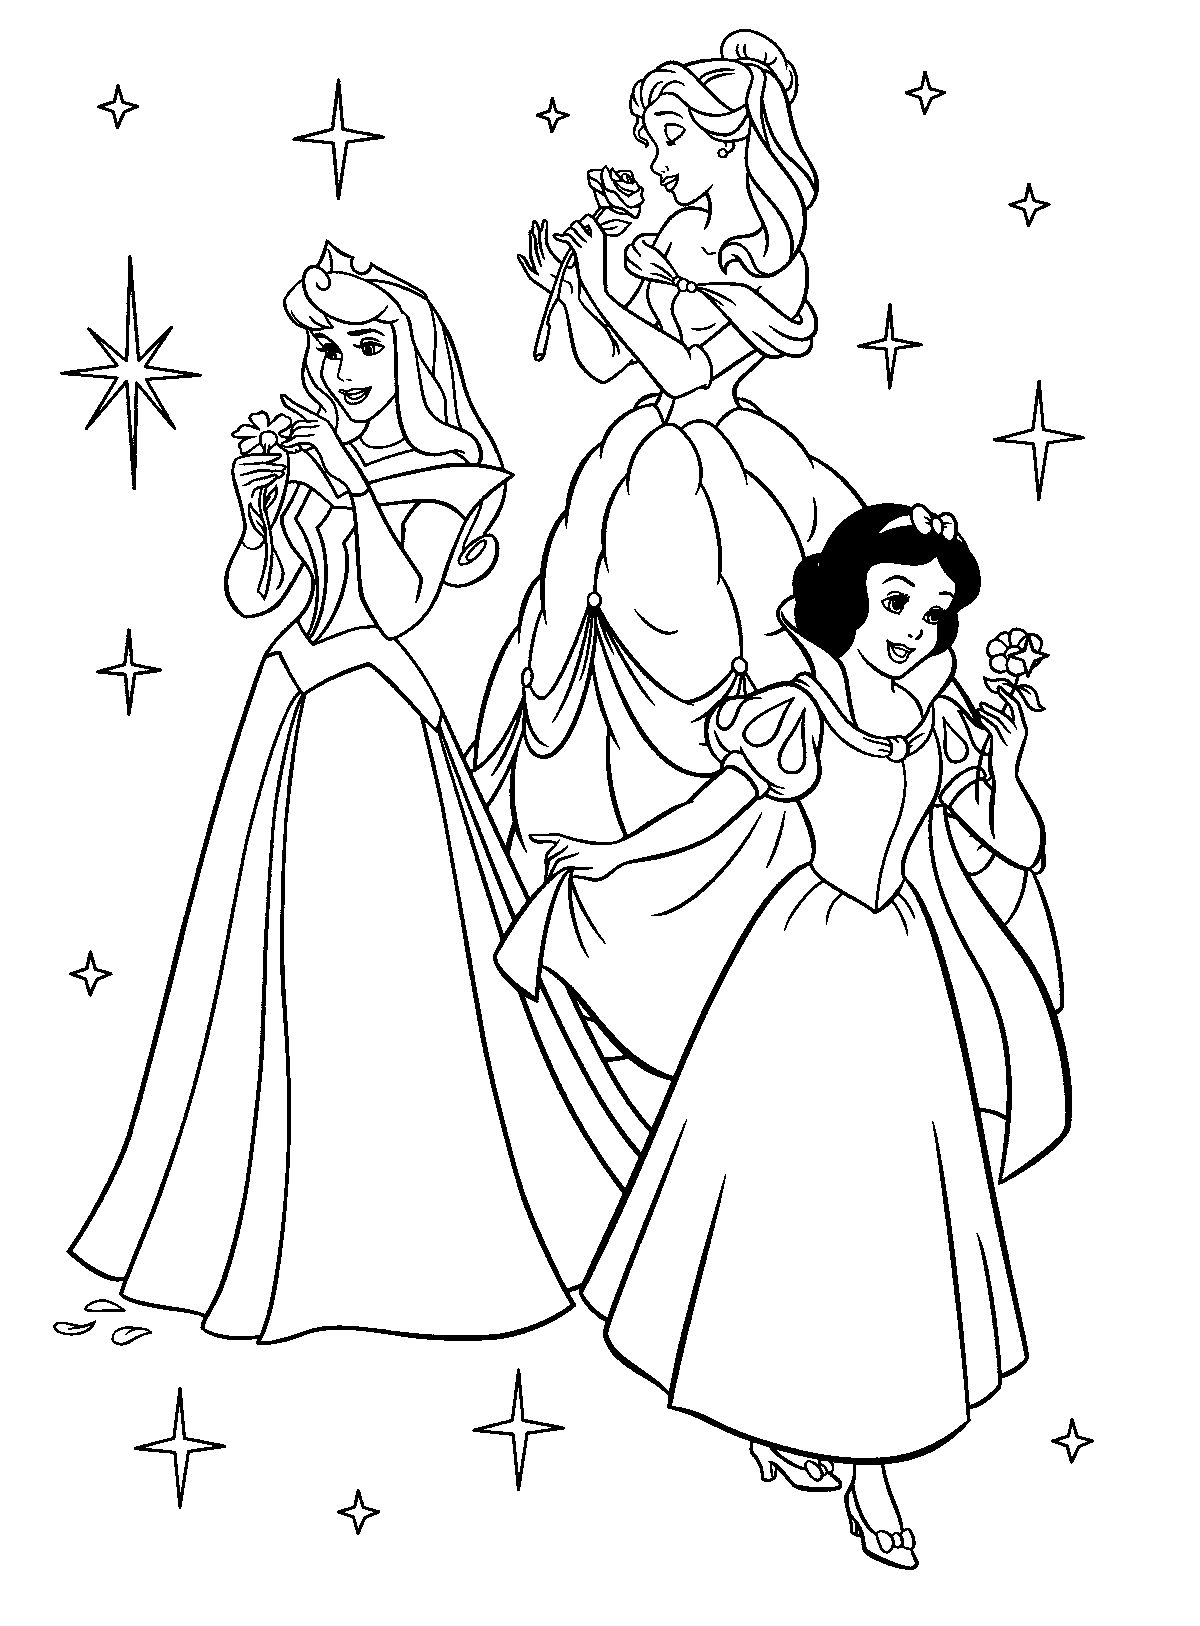 printable disney princess coloring pages # 1